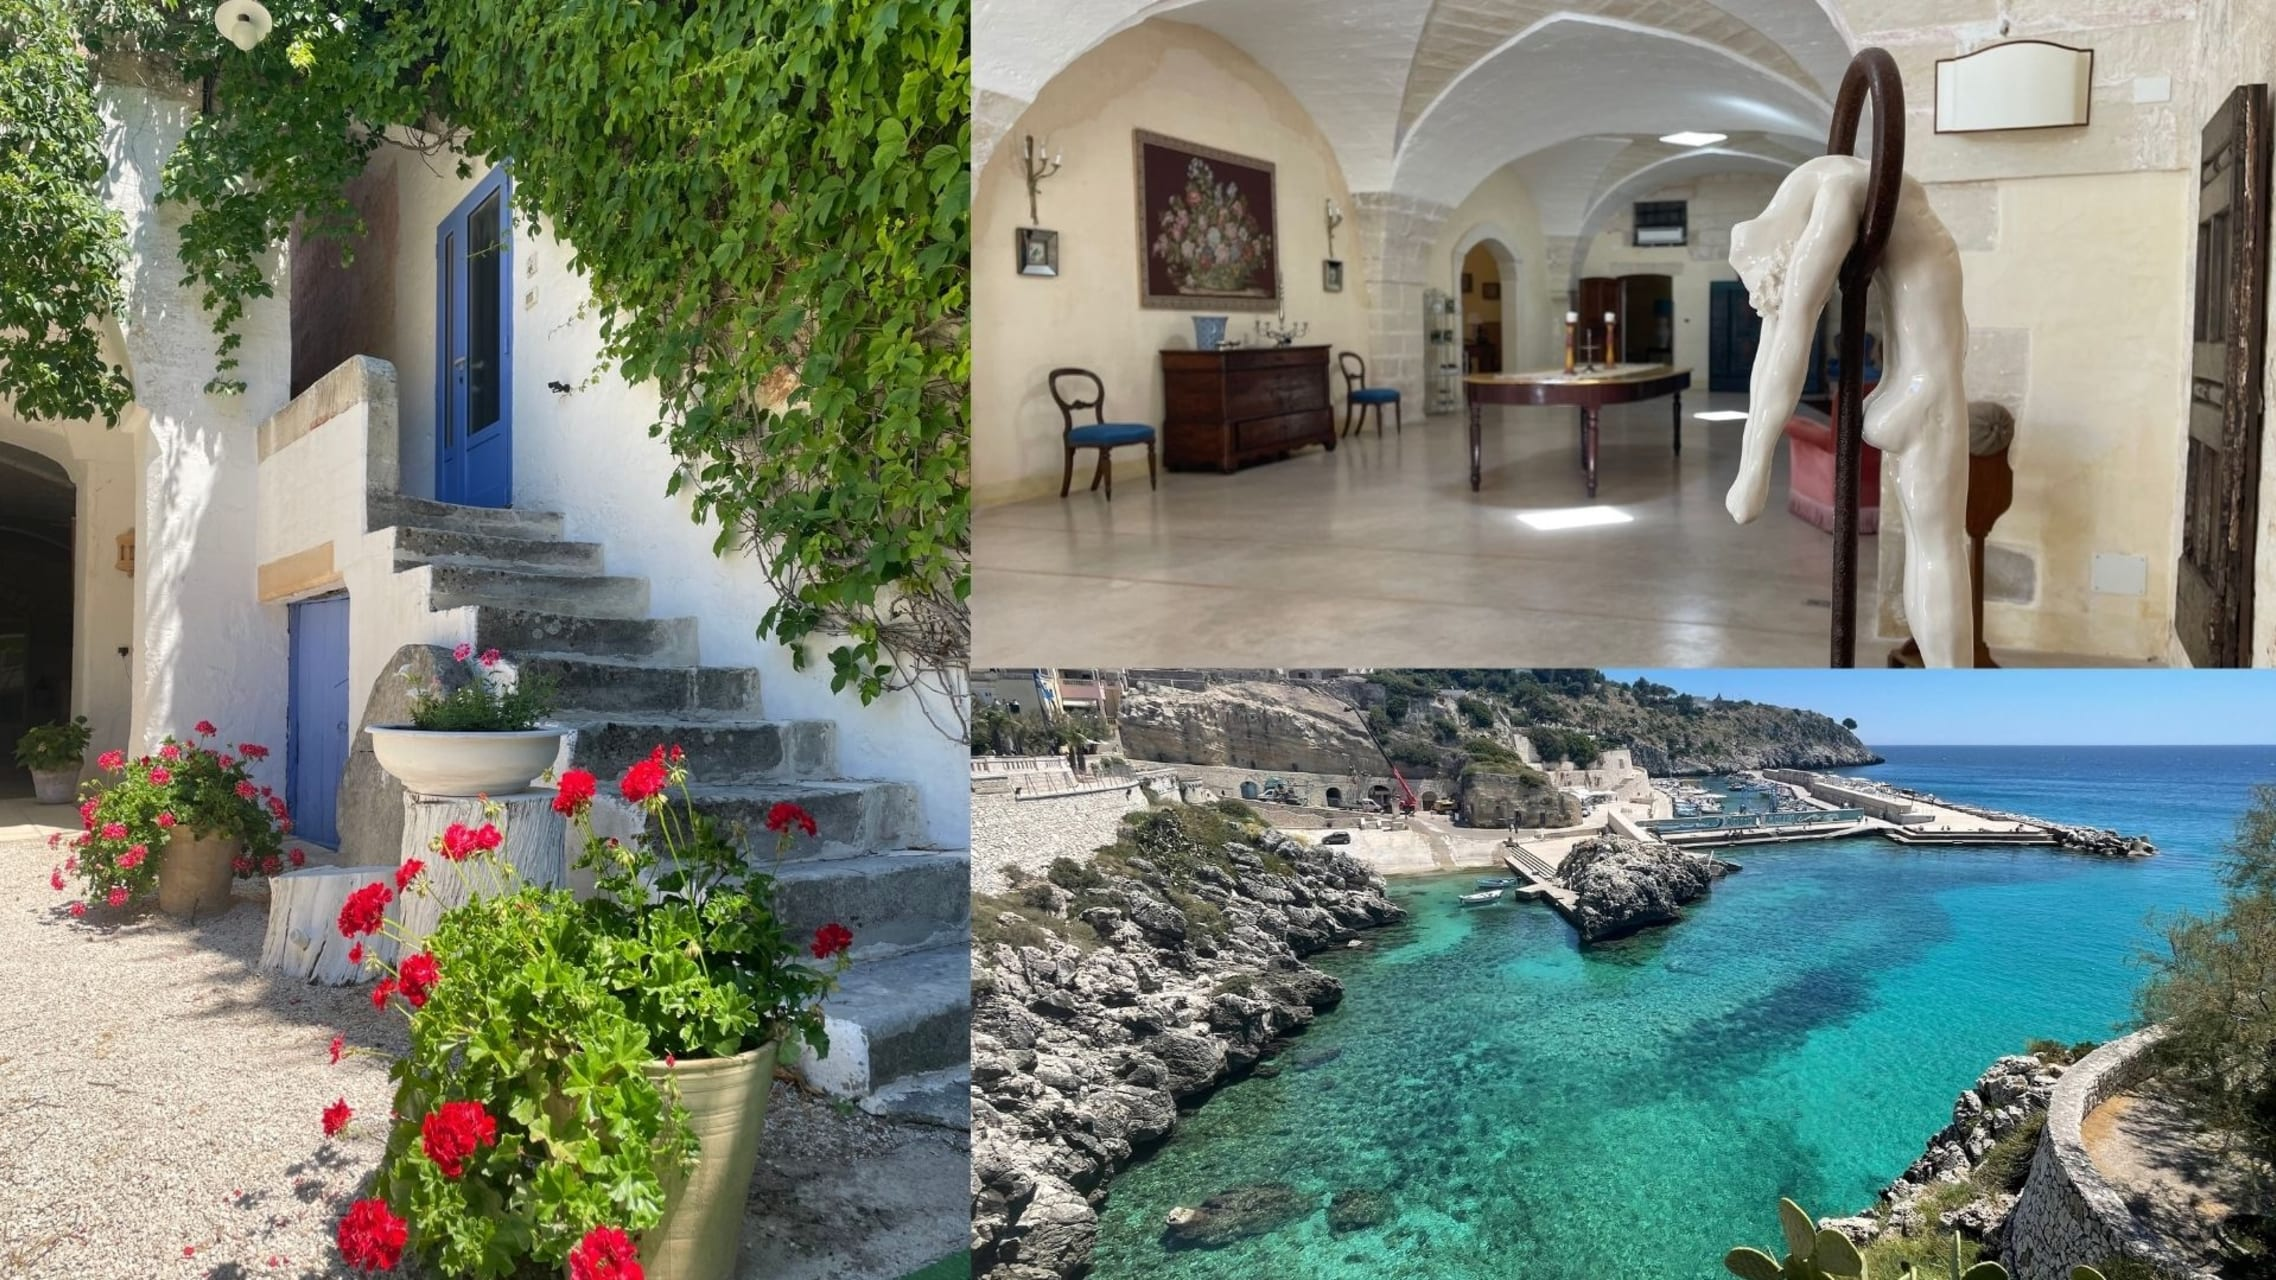 Puglia - Enchanting getaway between the turquoise sea and ancient towns of Salento